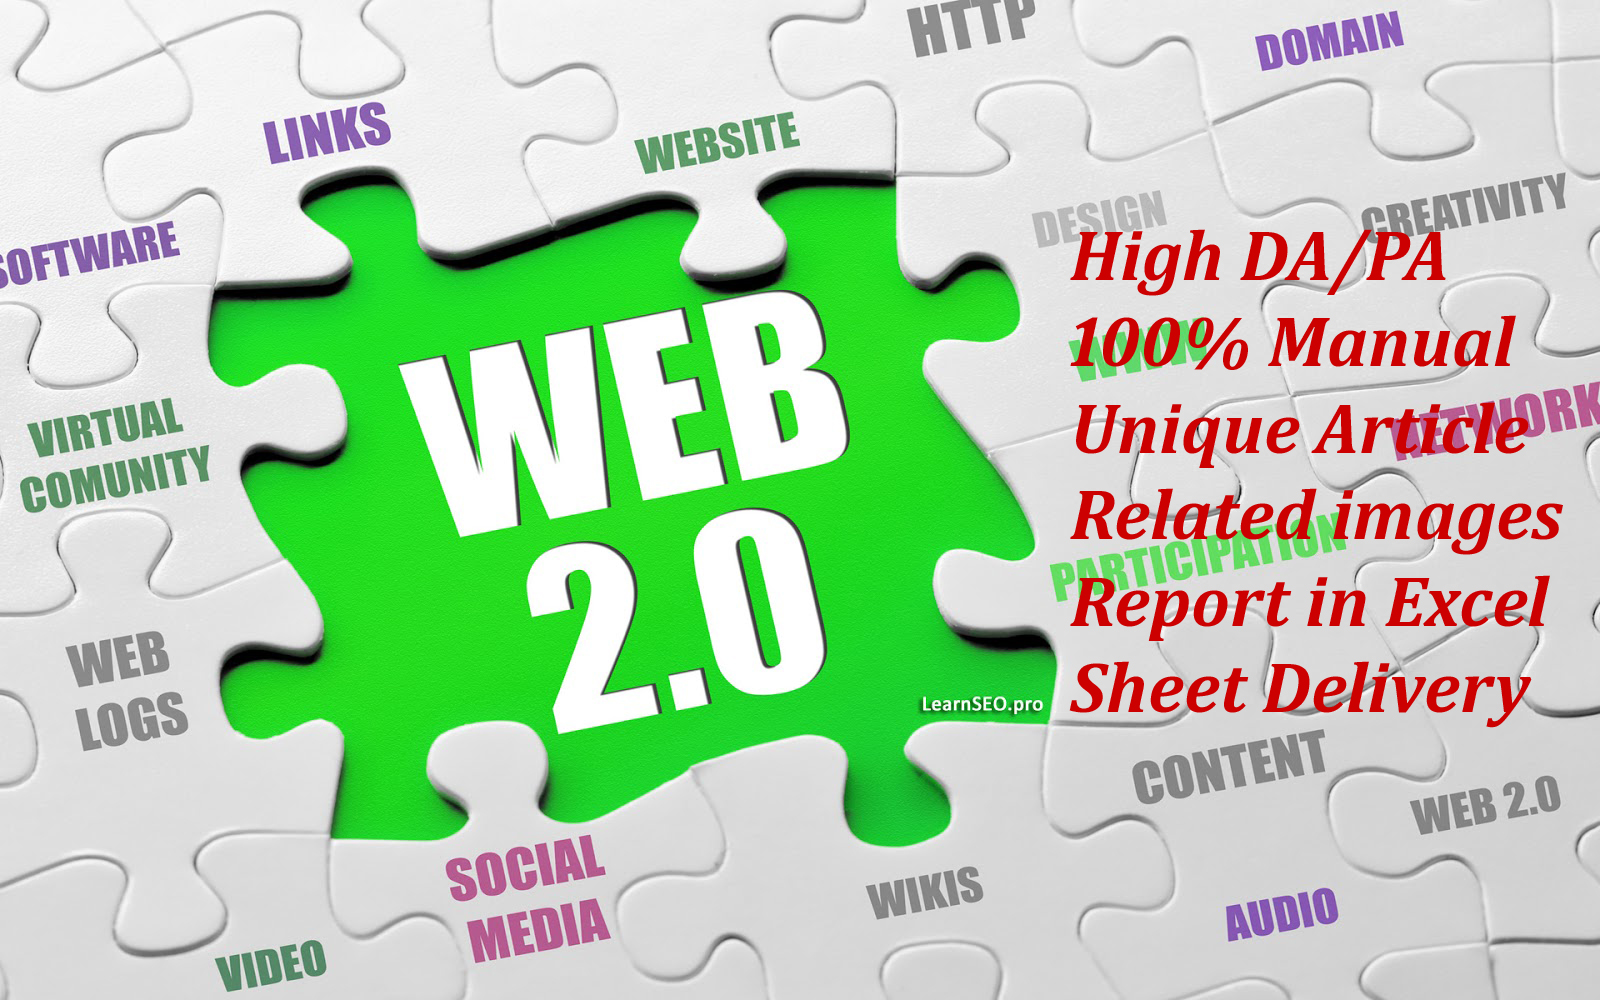 High Domain Authority 20 Web 2.0 back-links